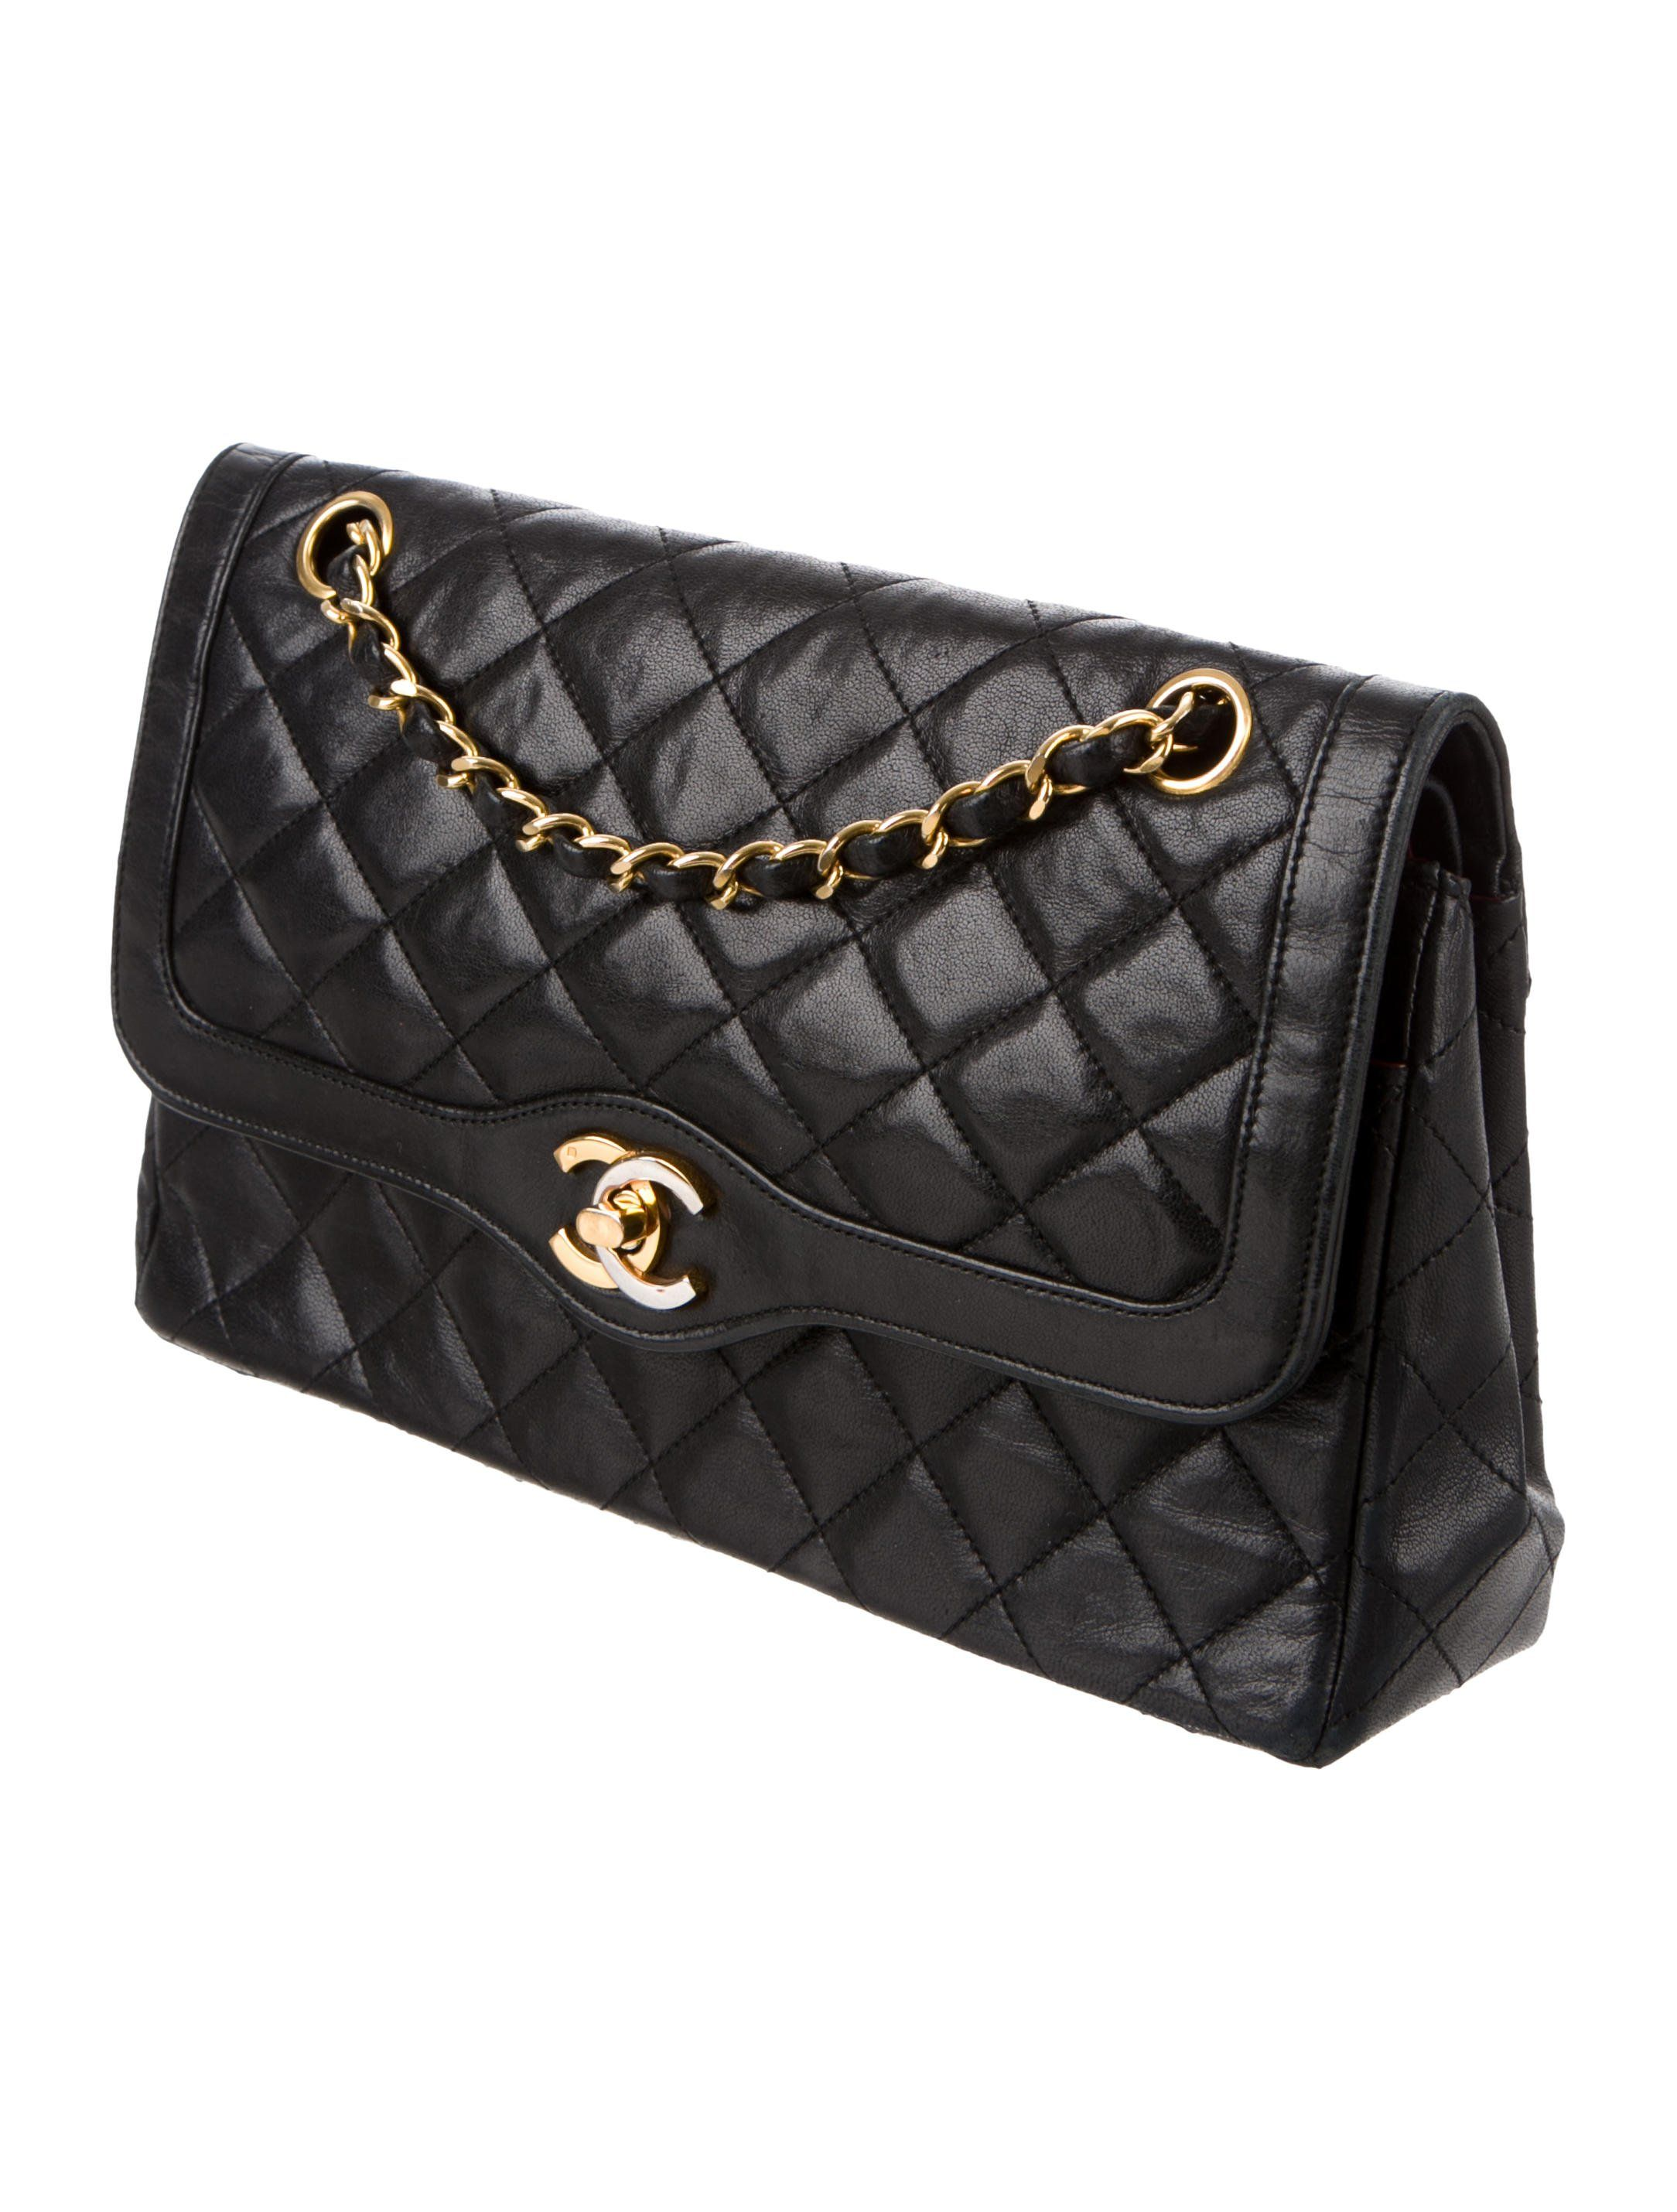 aec86861da50 Black quilted lambskin Chanel Vintage Paris Double Flap Bag with gold-tone  hardware, tonal stitching, logo at exterior, single pocket at back, single  chain-